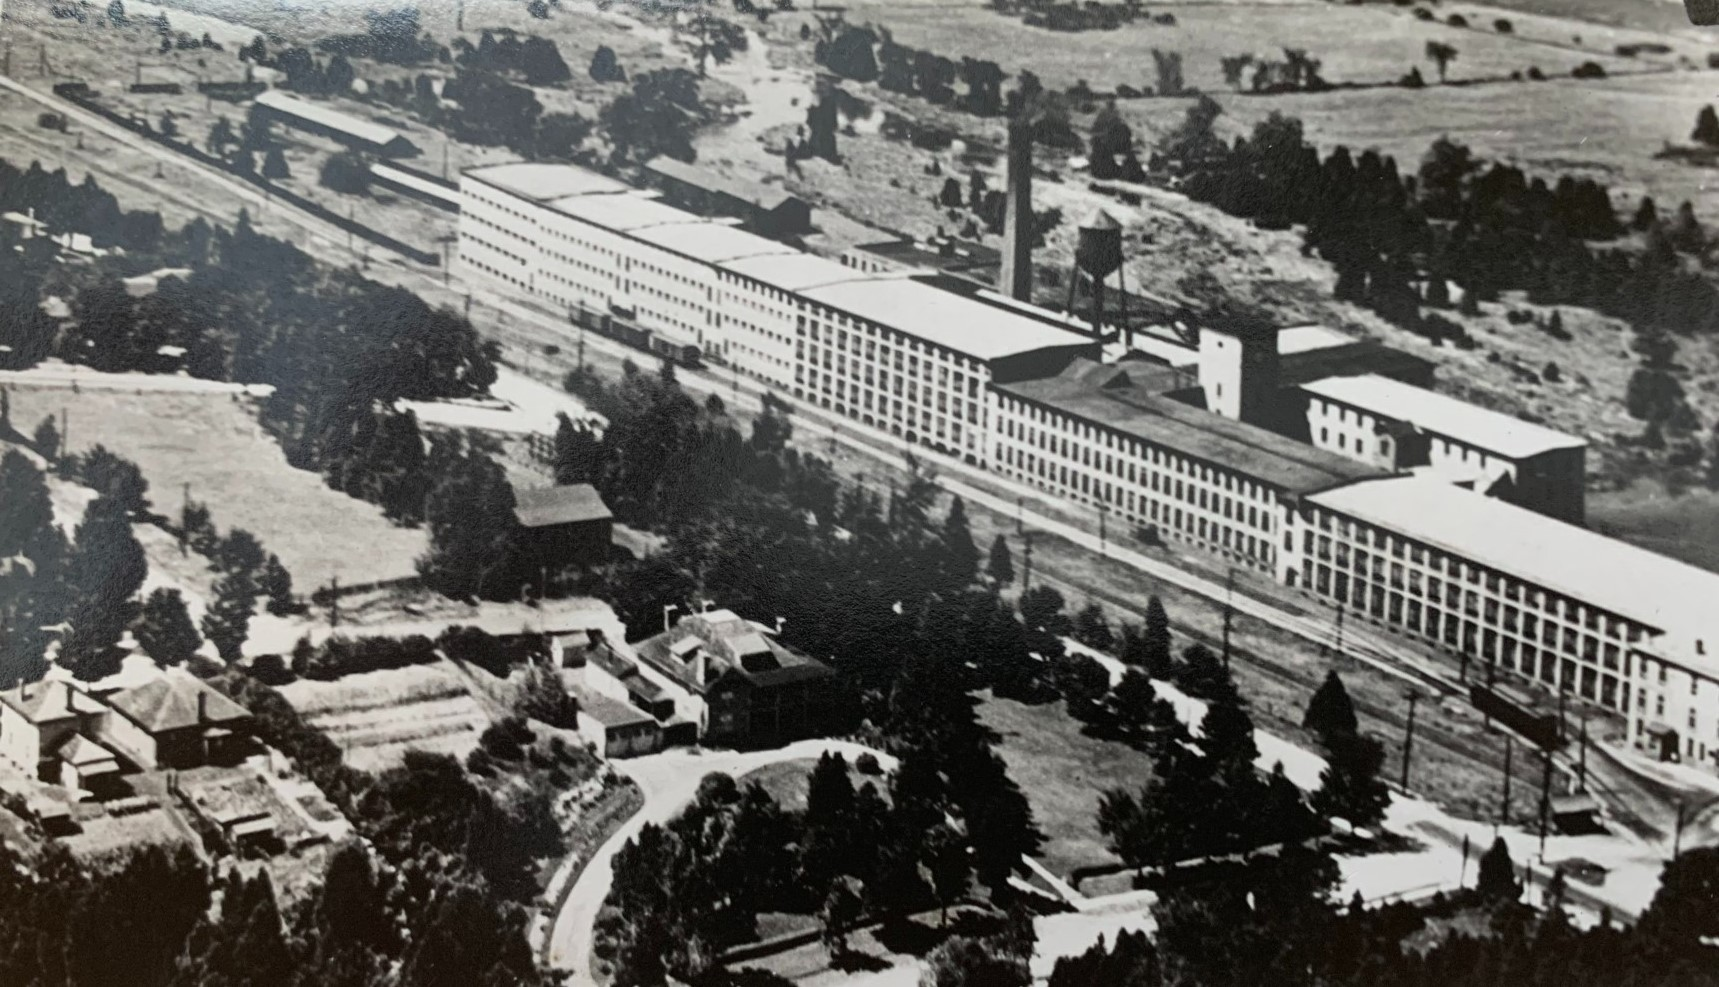 Dominion Woollens and Worsteds, Limited, in Hespeler, Ontario, circa 1940. This was the largest textile mill in the British Commonwealth at the time.